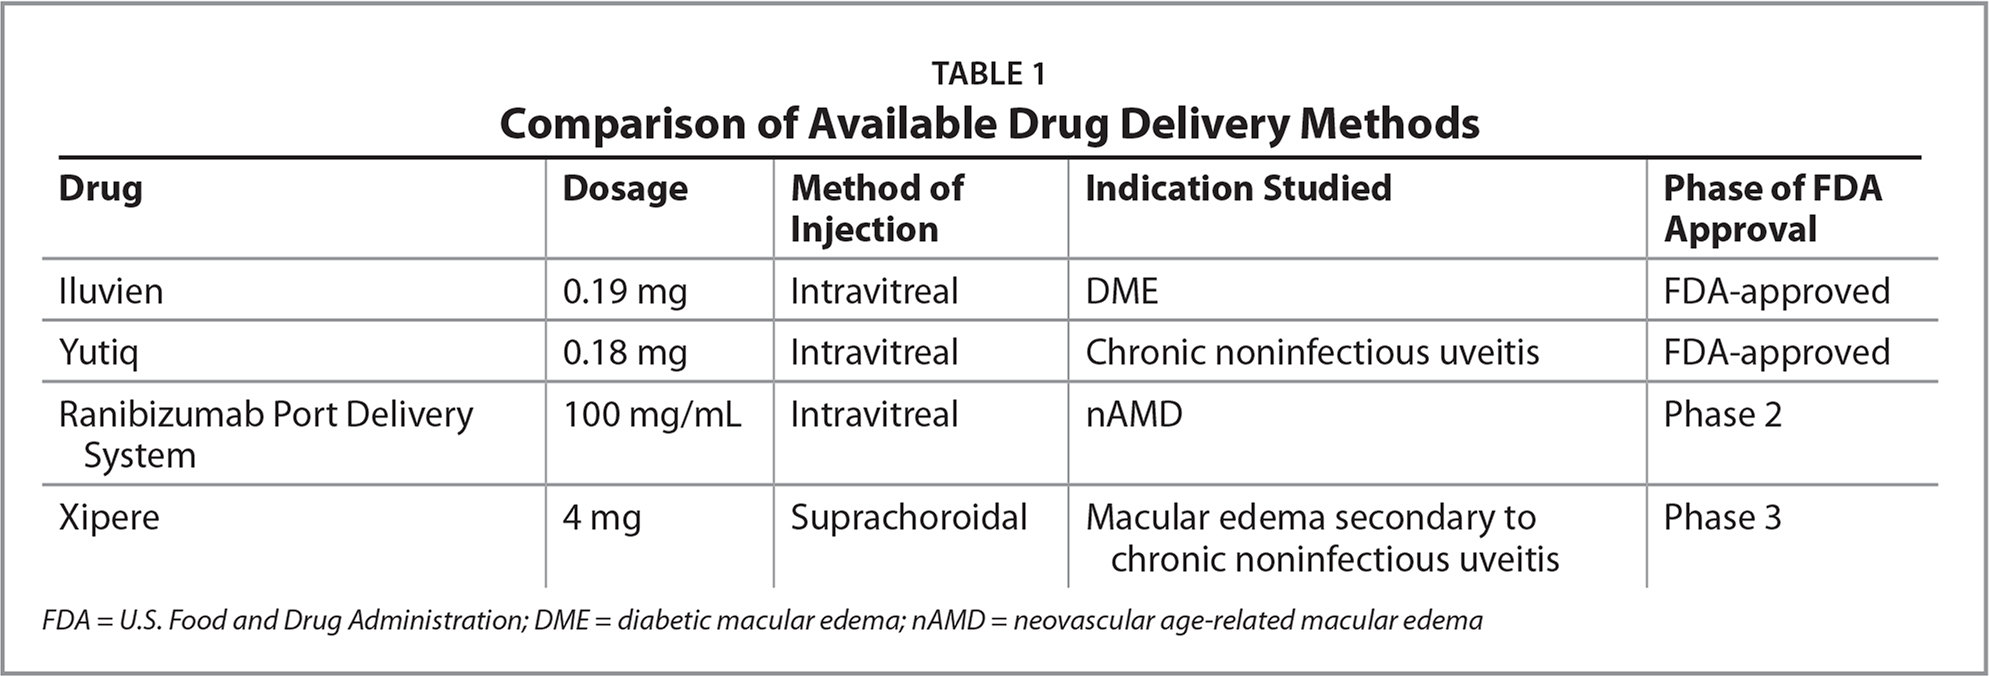 Comparison of Available Drug Delivery Methods